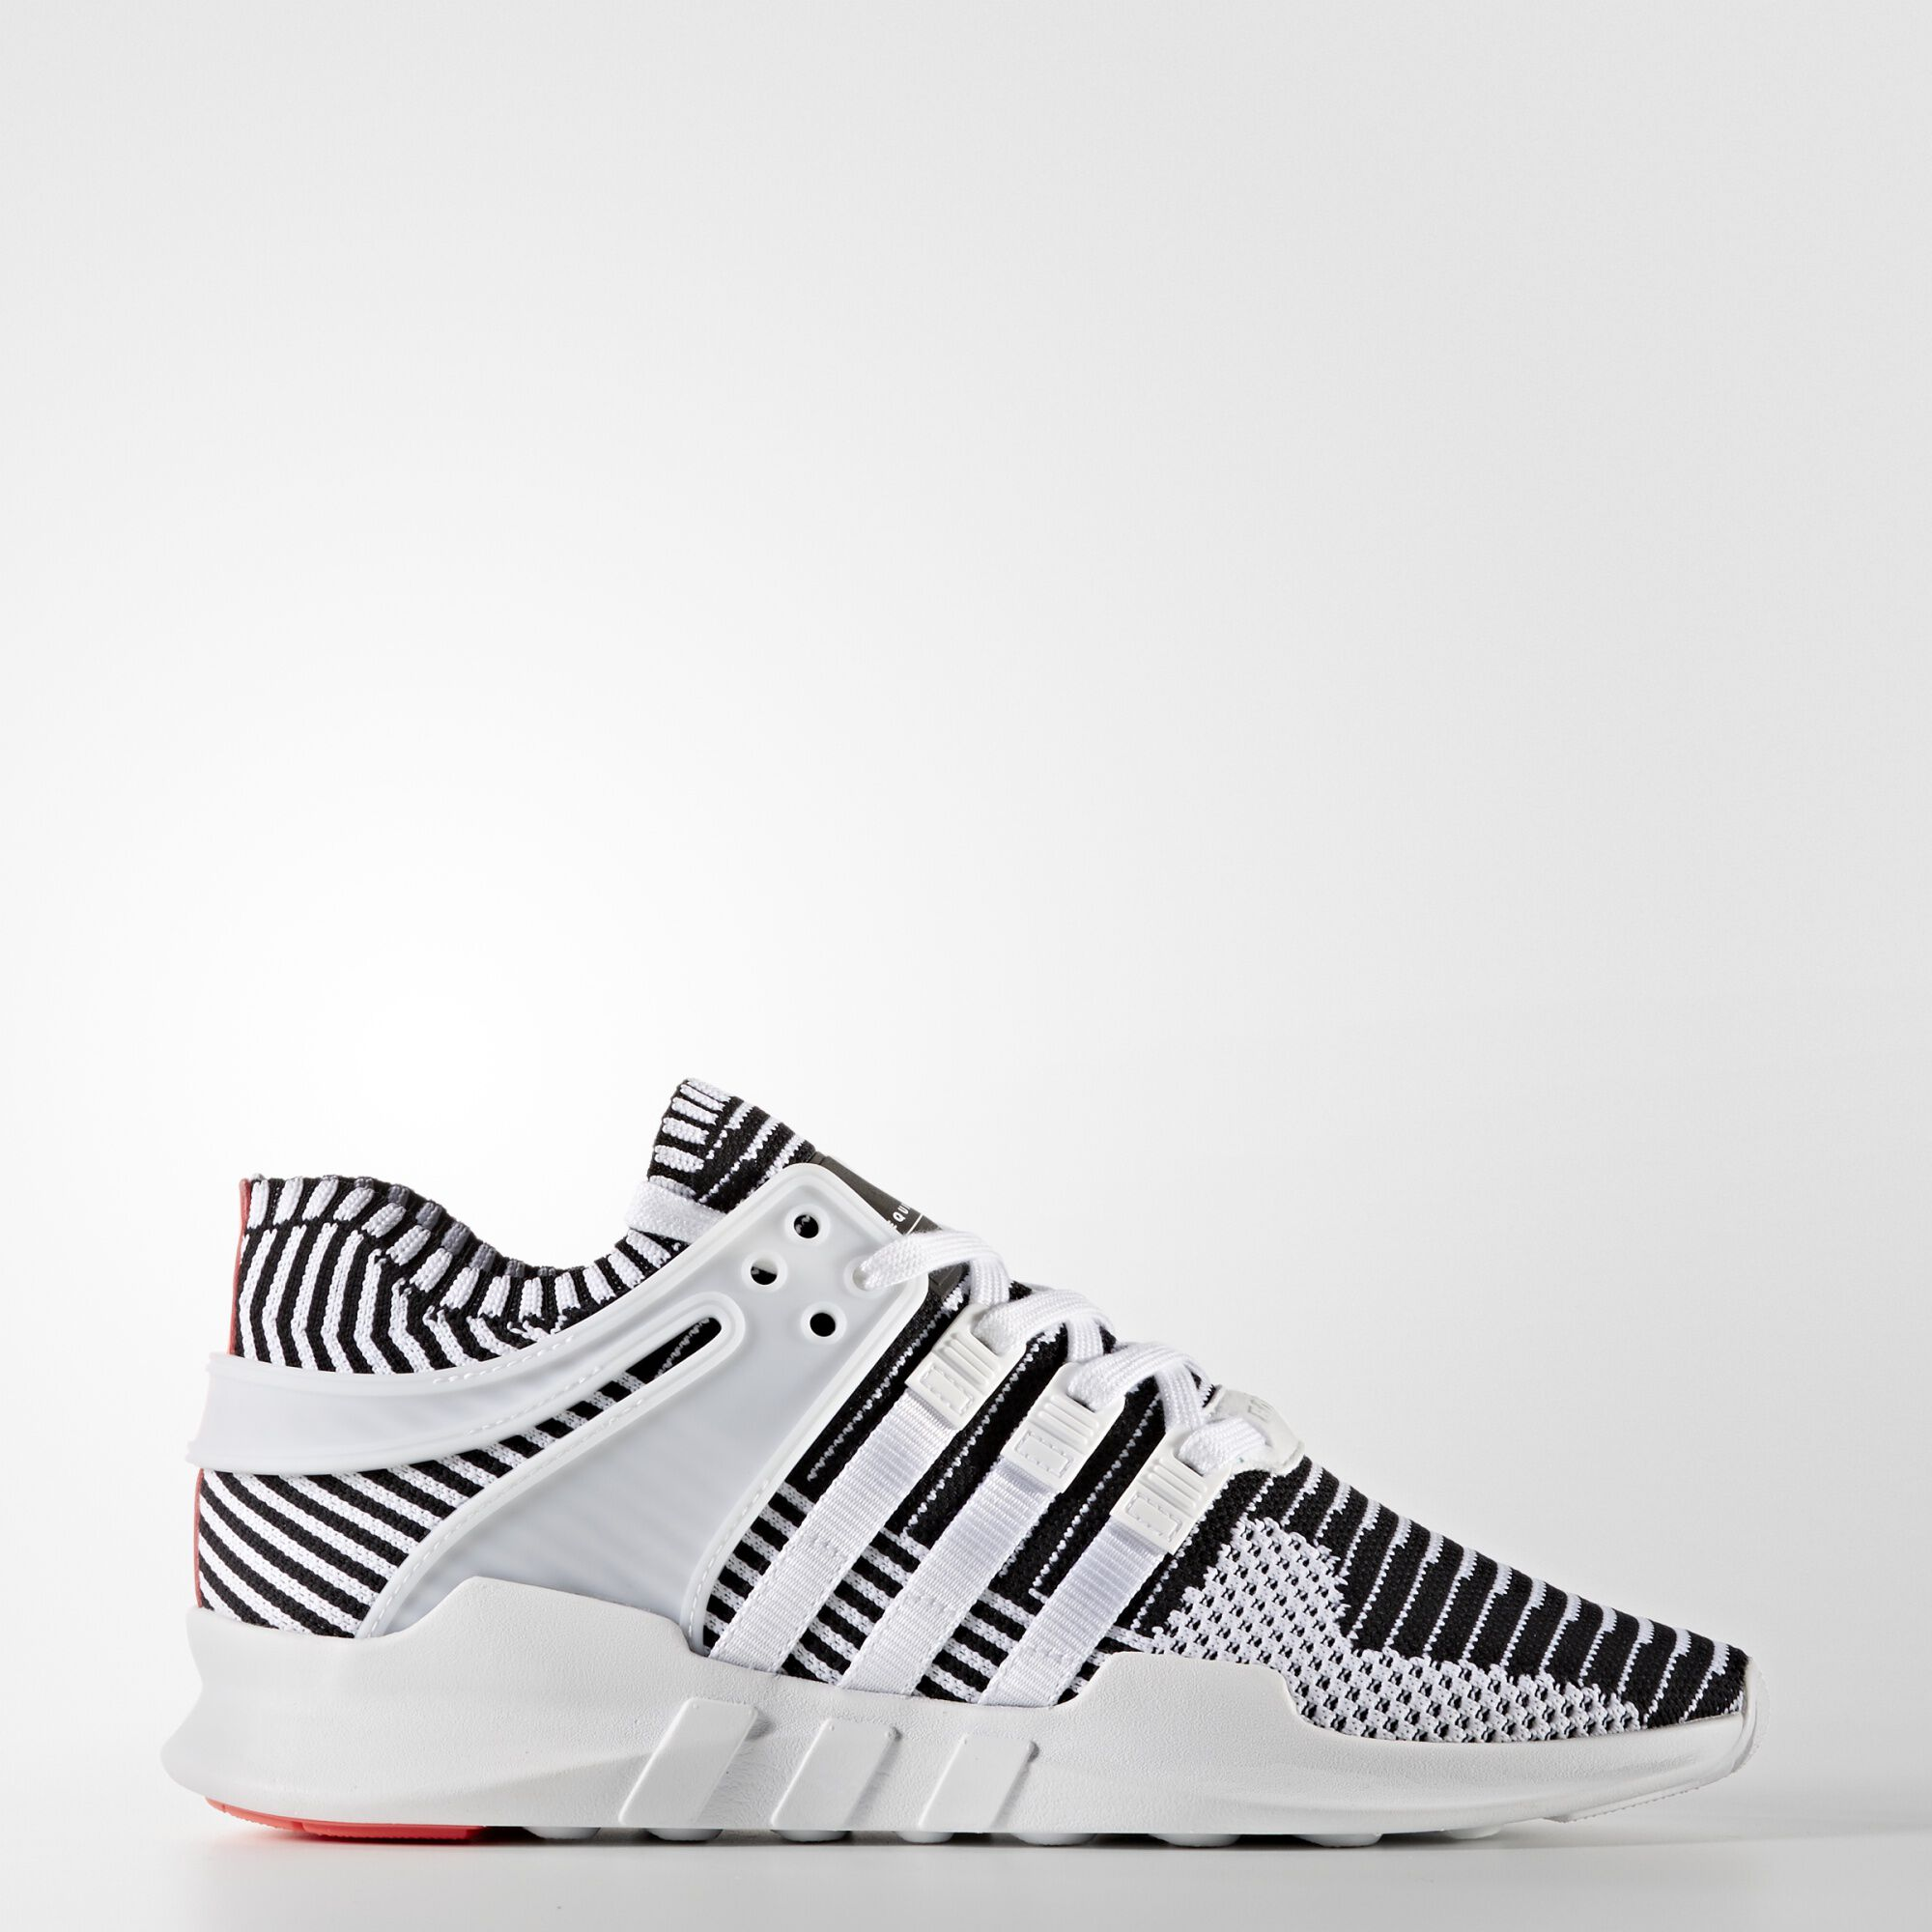 adidas EQT Support ADV Core Black Turbo Red